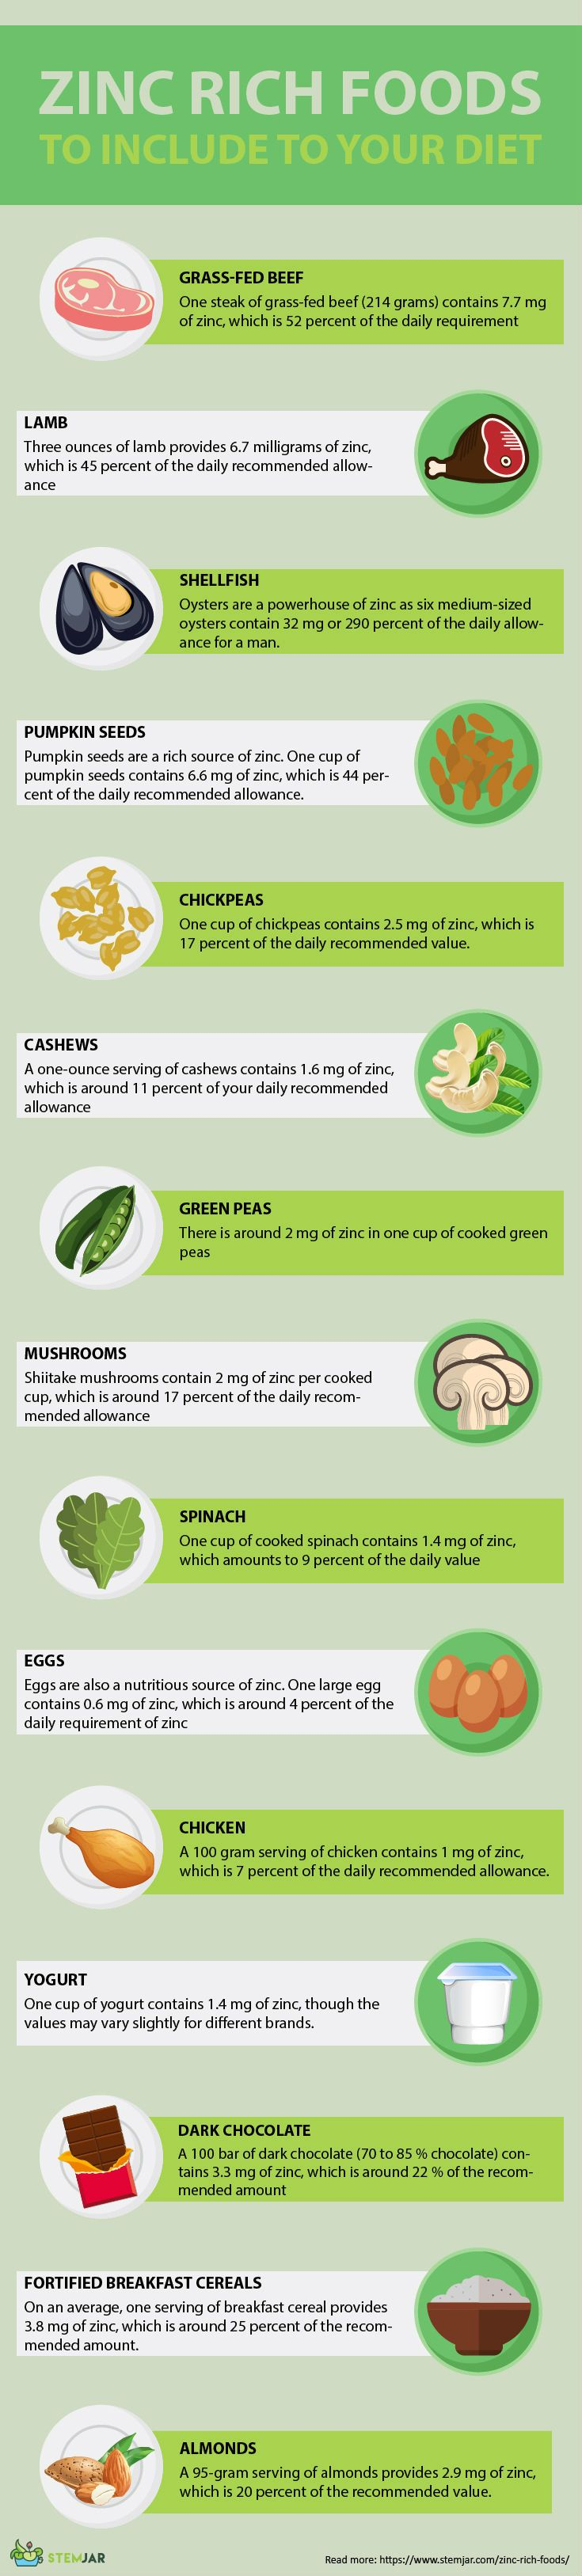 15 Top Zinc-Rich Foods that You Must Include in Your Diet